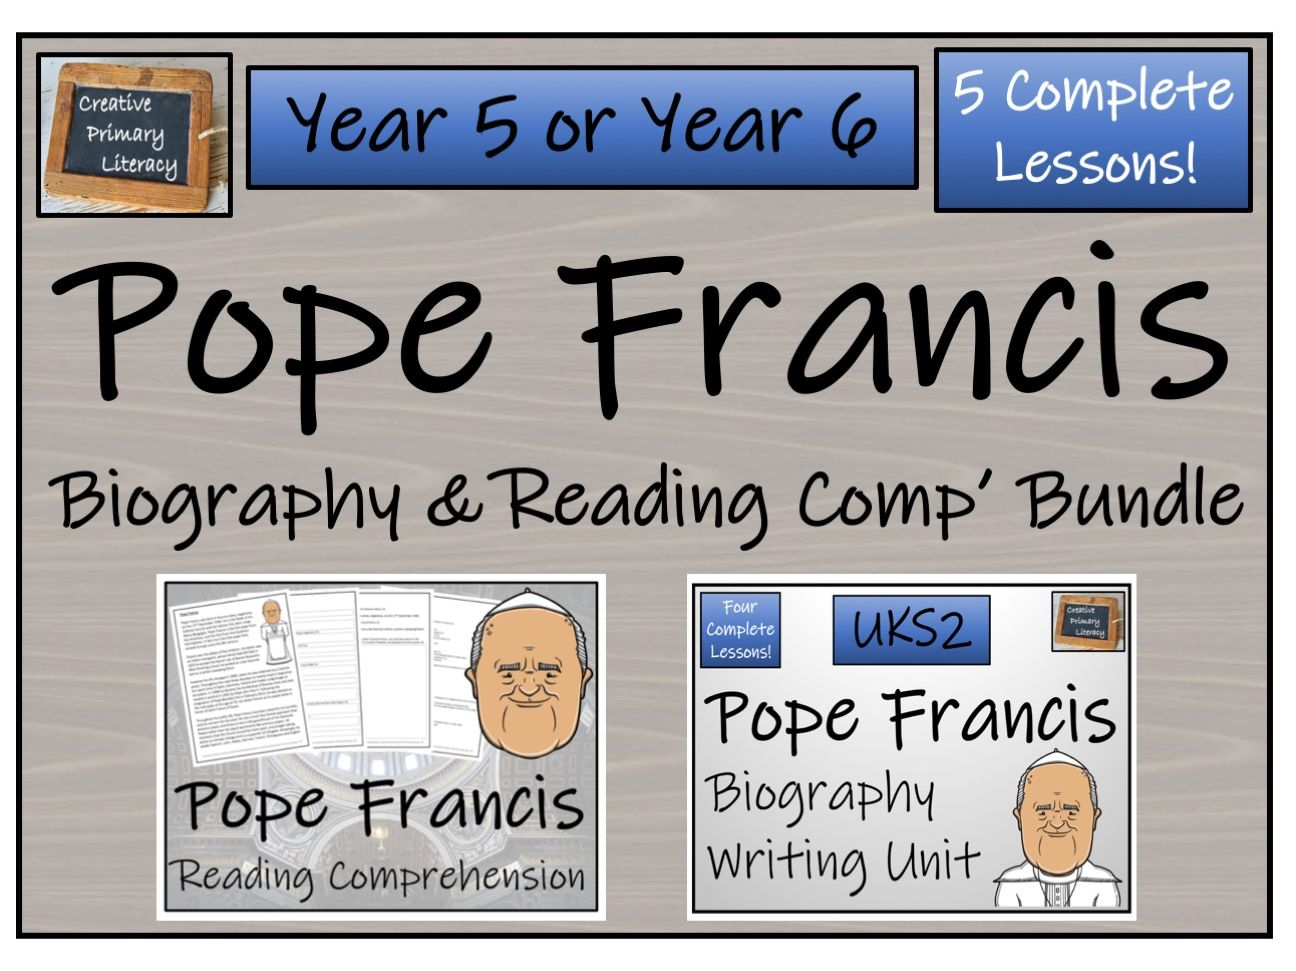 UKS2 Literacy - Pope Francis Reading Comprehension & Biography Bundle